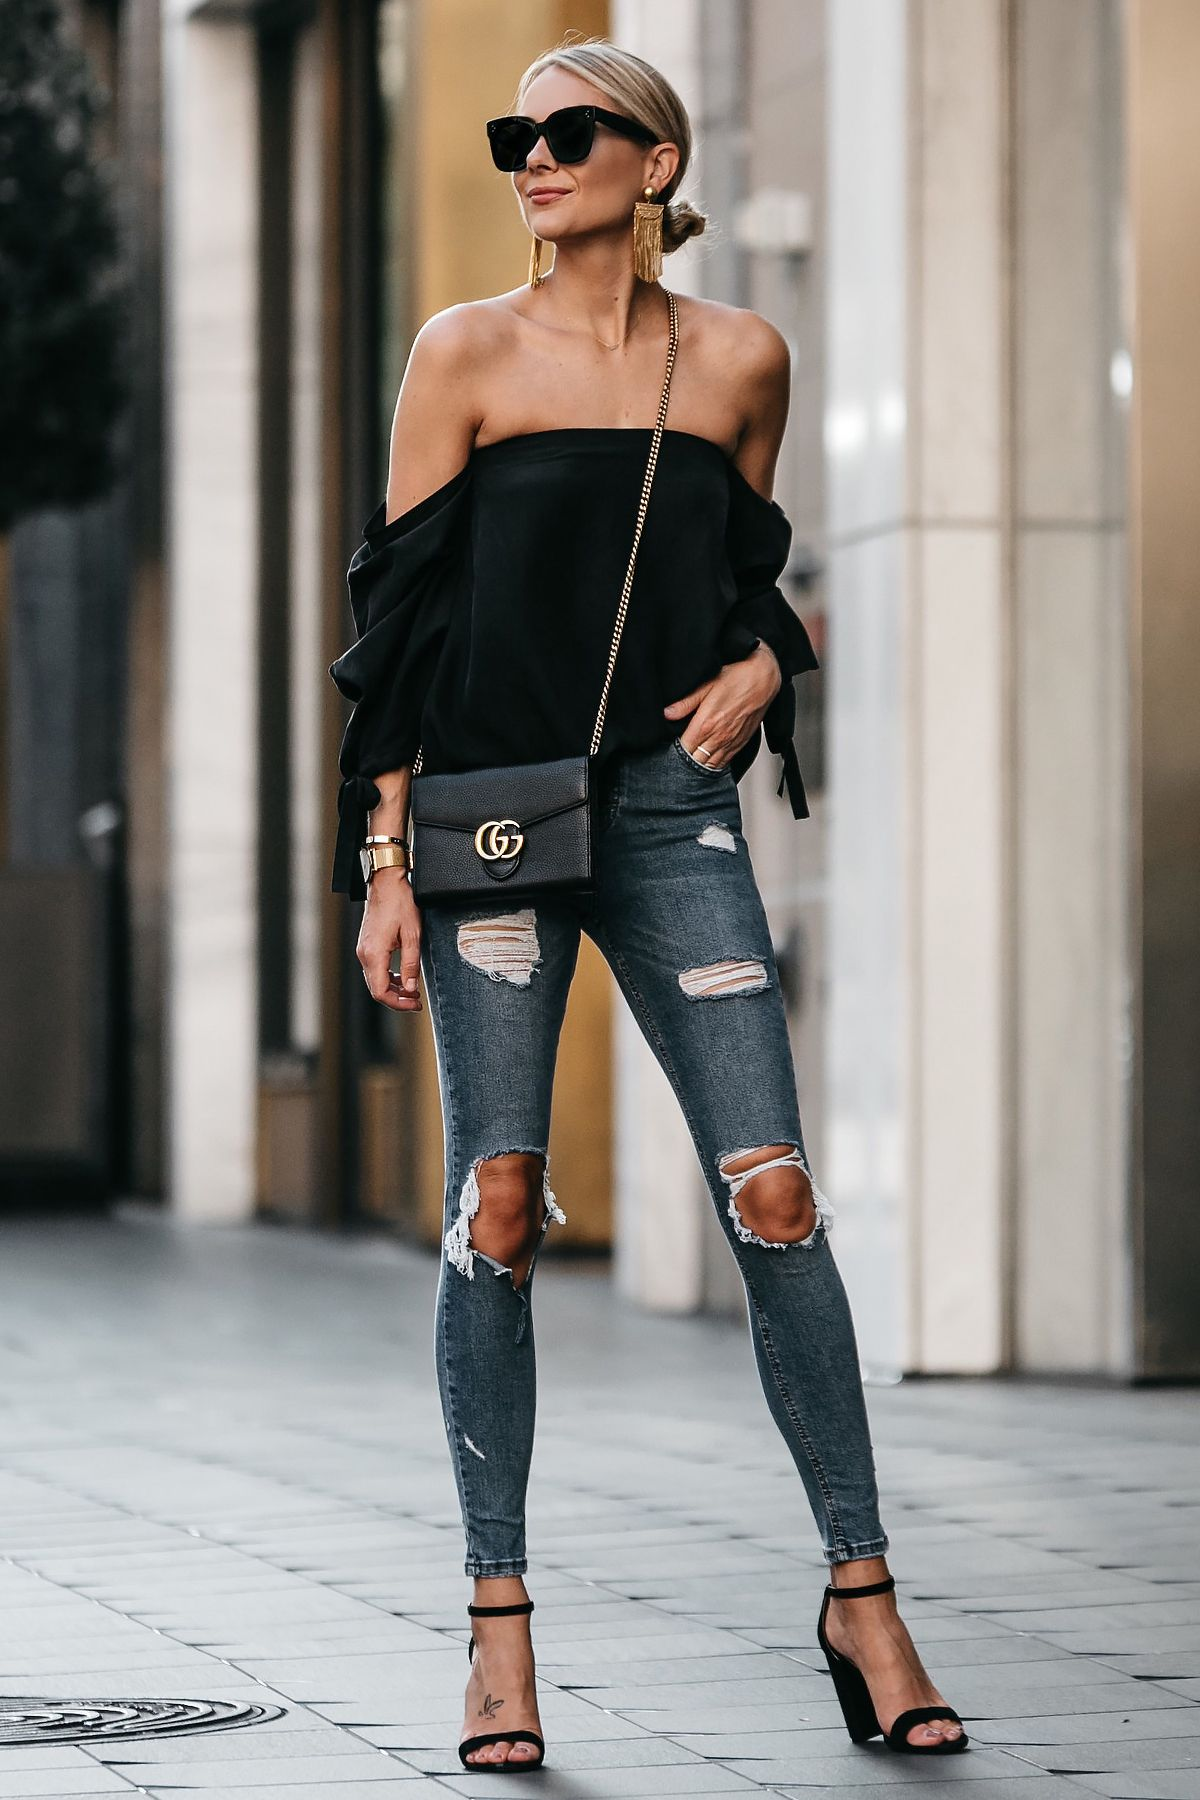 190ed2cfa1554 Blonde Woman Wearing Club Monaco Black Off-the-Shoulder Top Denim Ripped  Skinny Jeans Outfit Black Ankle Strap Heels Gucci Marmont Handbag